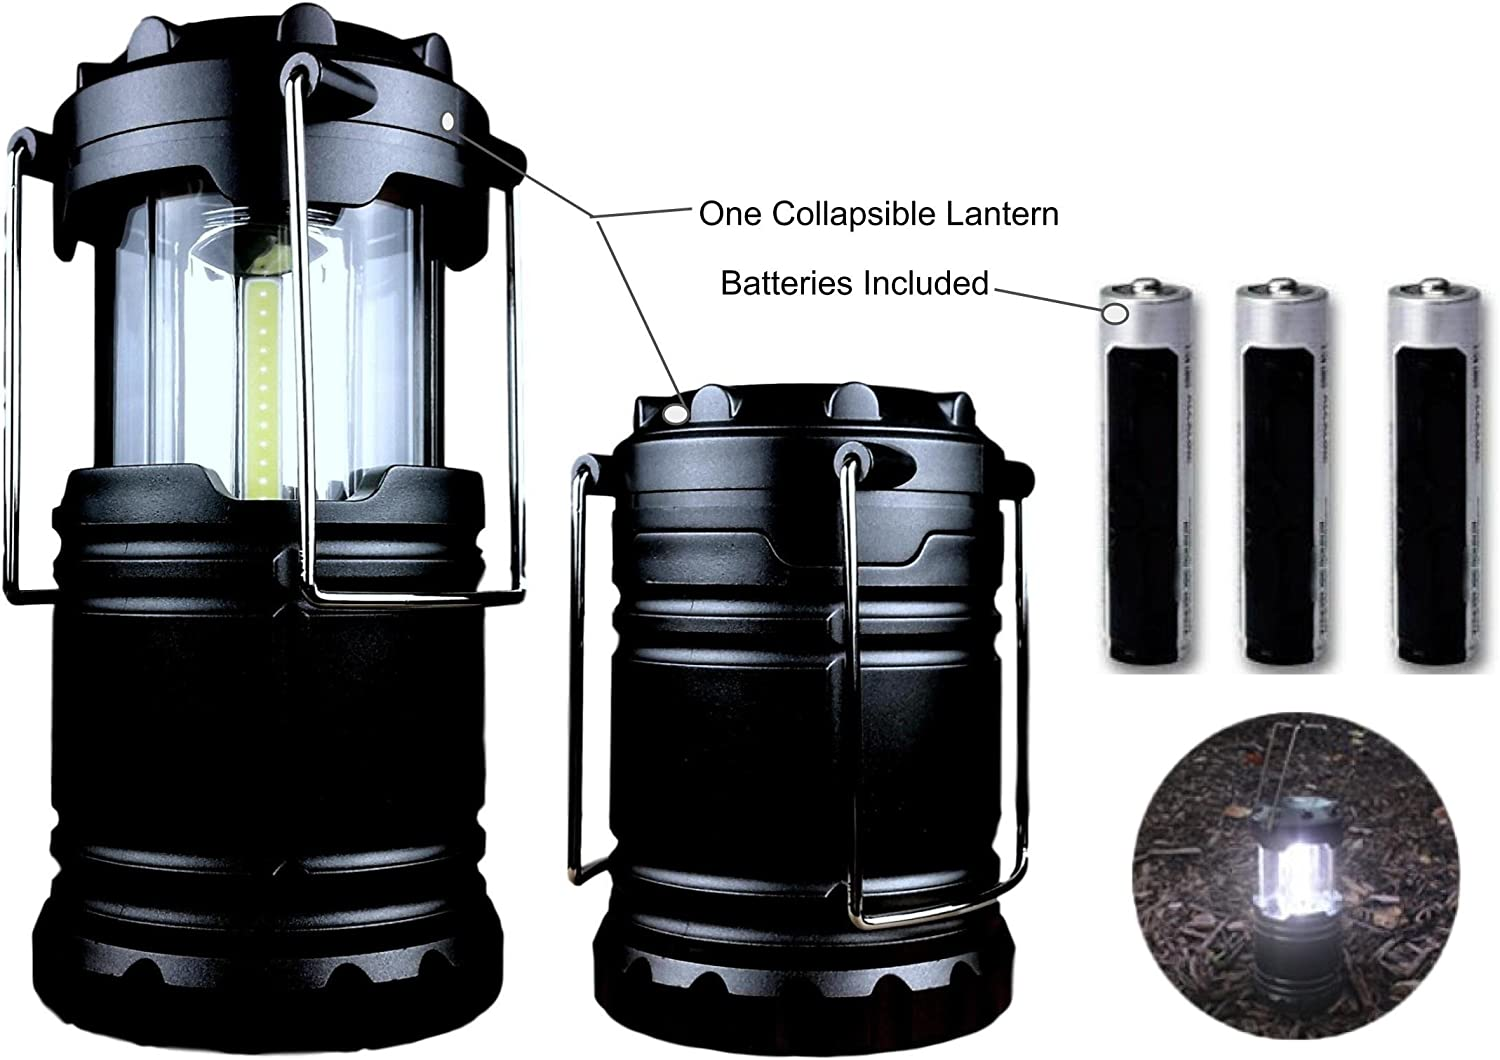 JOEY Z Camping Lantern Military Tactical Light Lantern Collapsible Ultra Bright Portable Hanging LED Torch Batteries Included